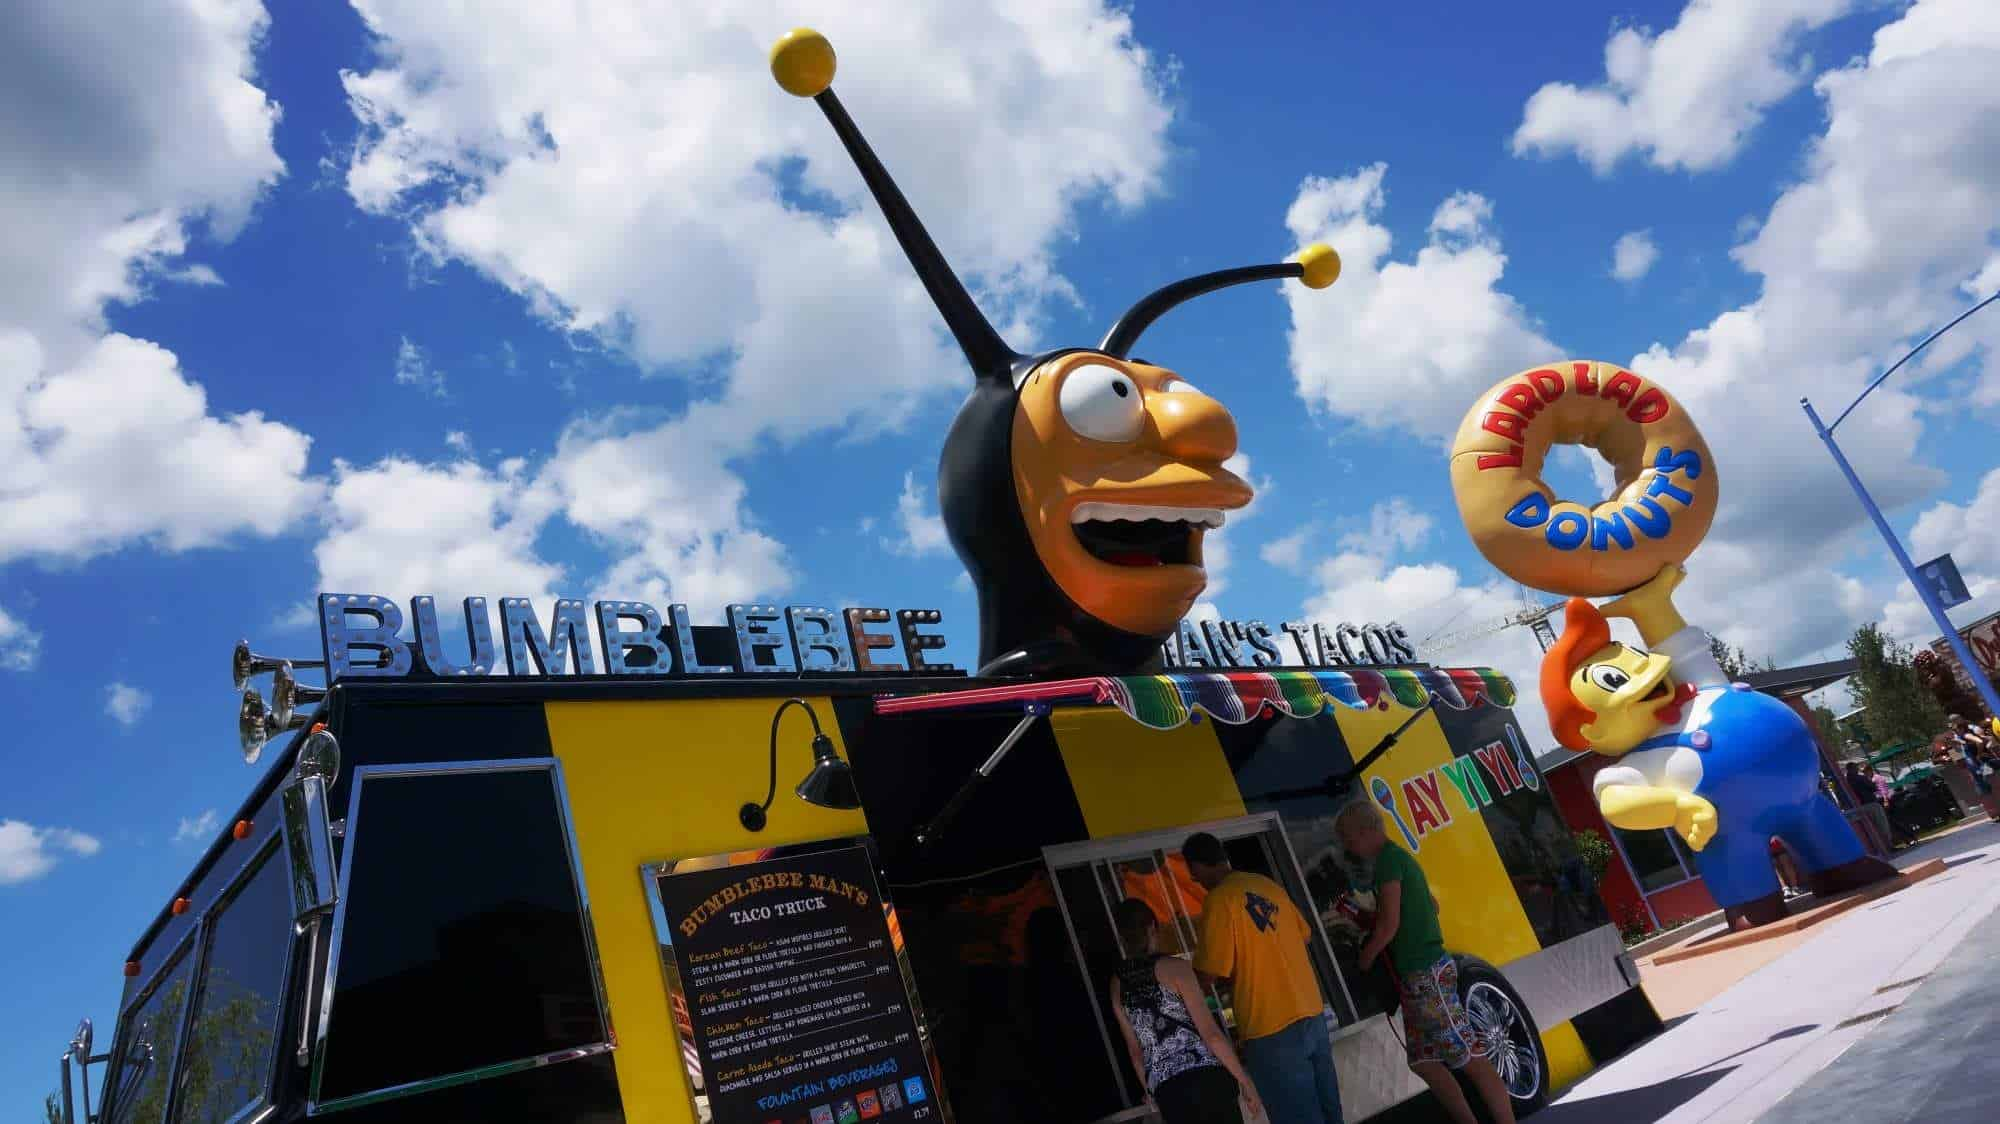 Bumblebee Man's Taco Truck in Springfield: Home of the Simpsons, Universal Studios Florida